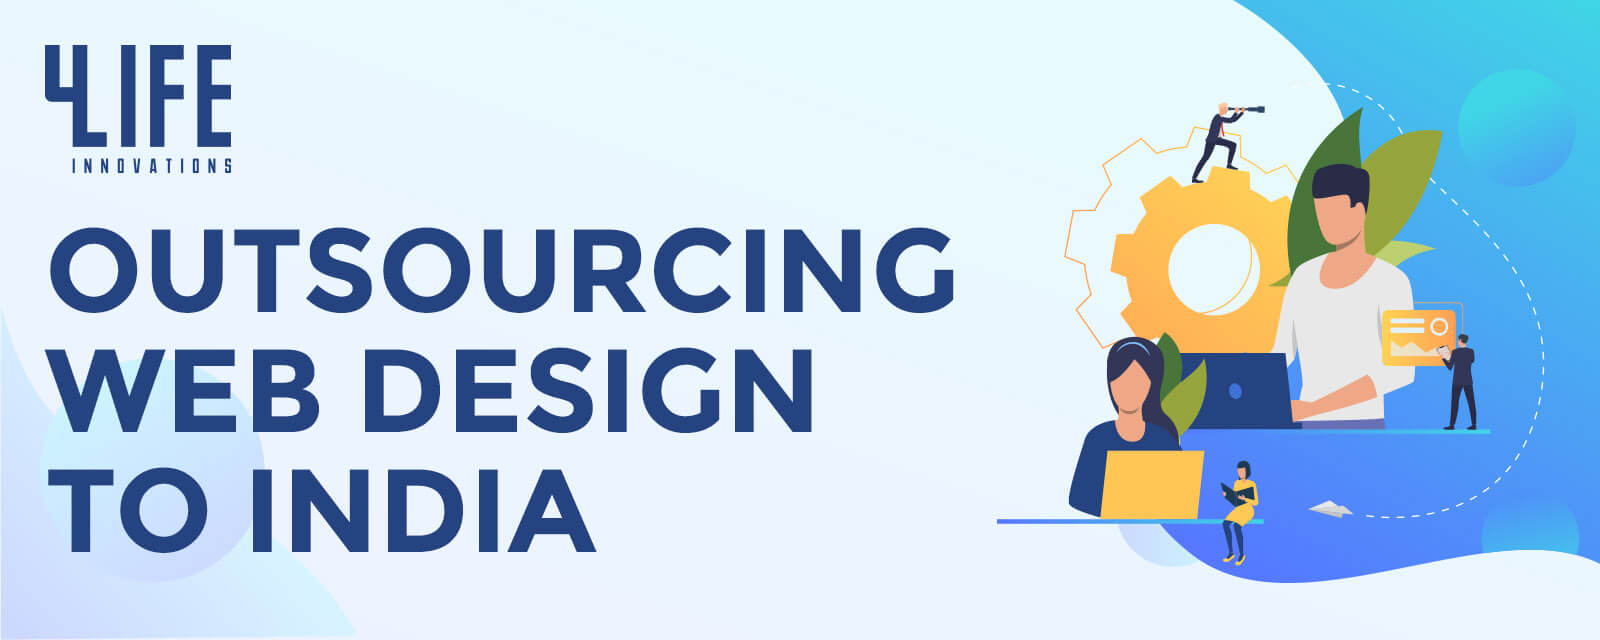 Web Design Outsourcing India | Outsource Web Design Company